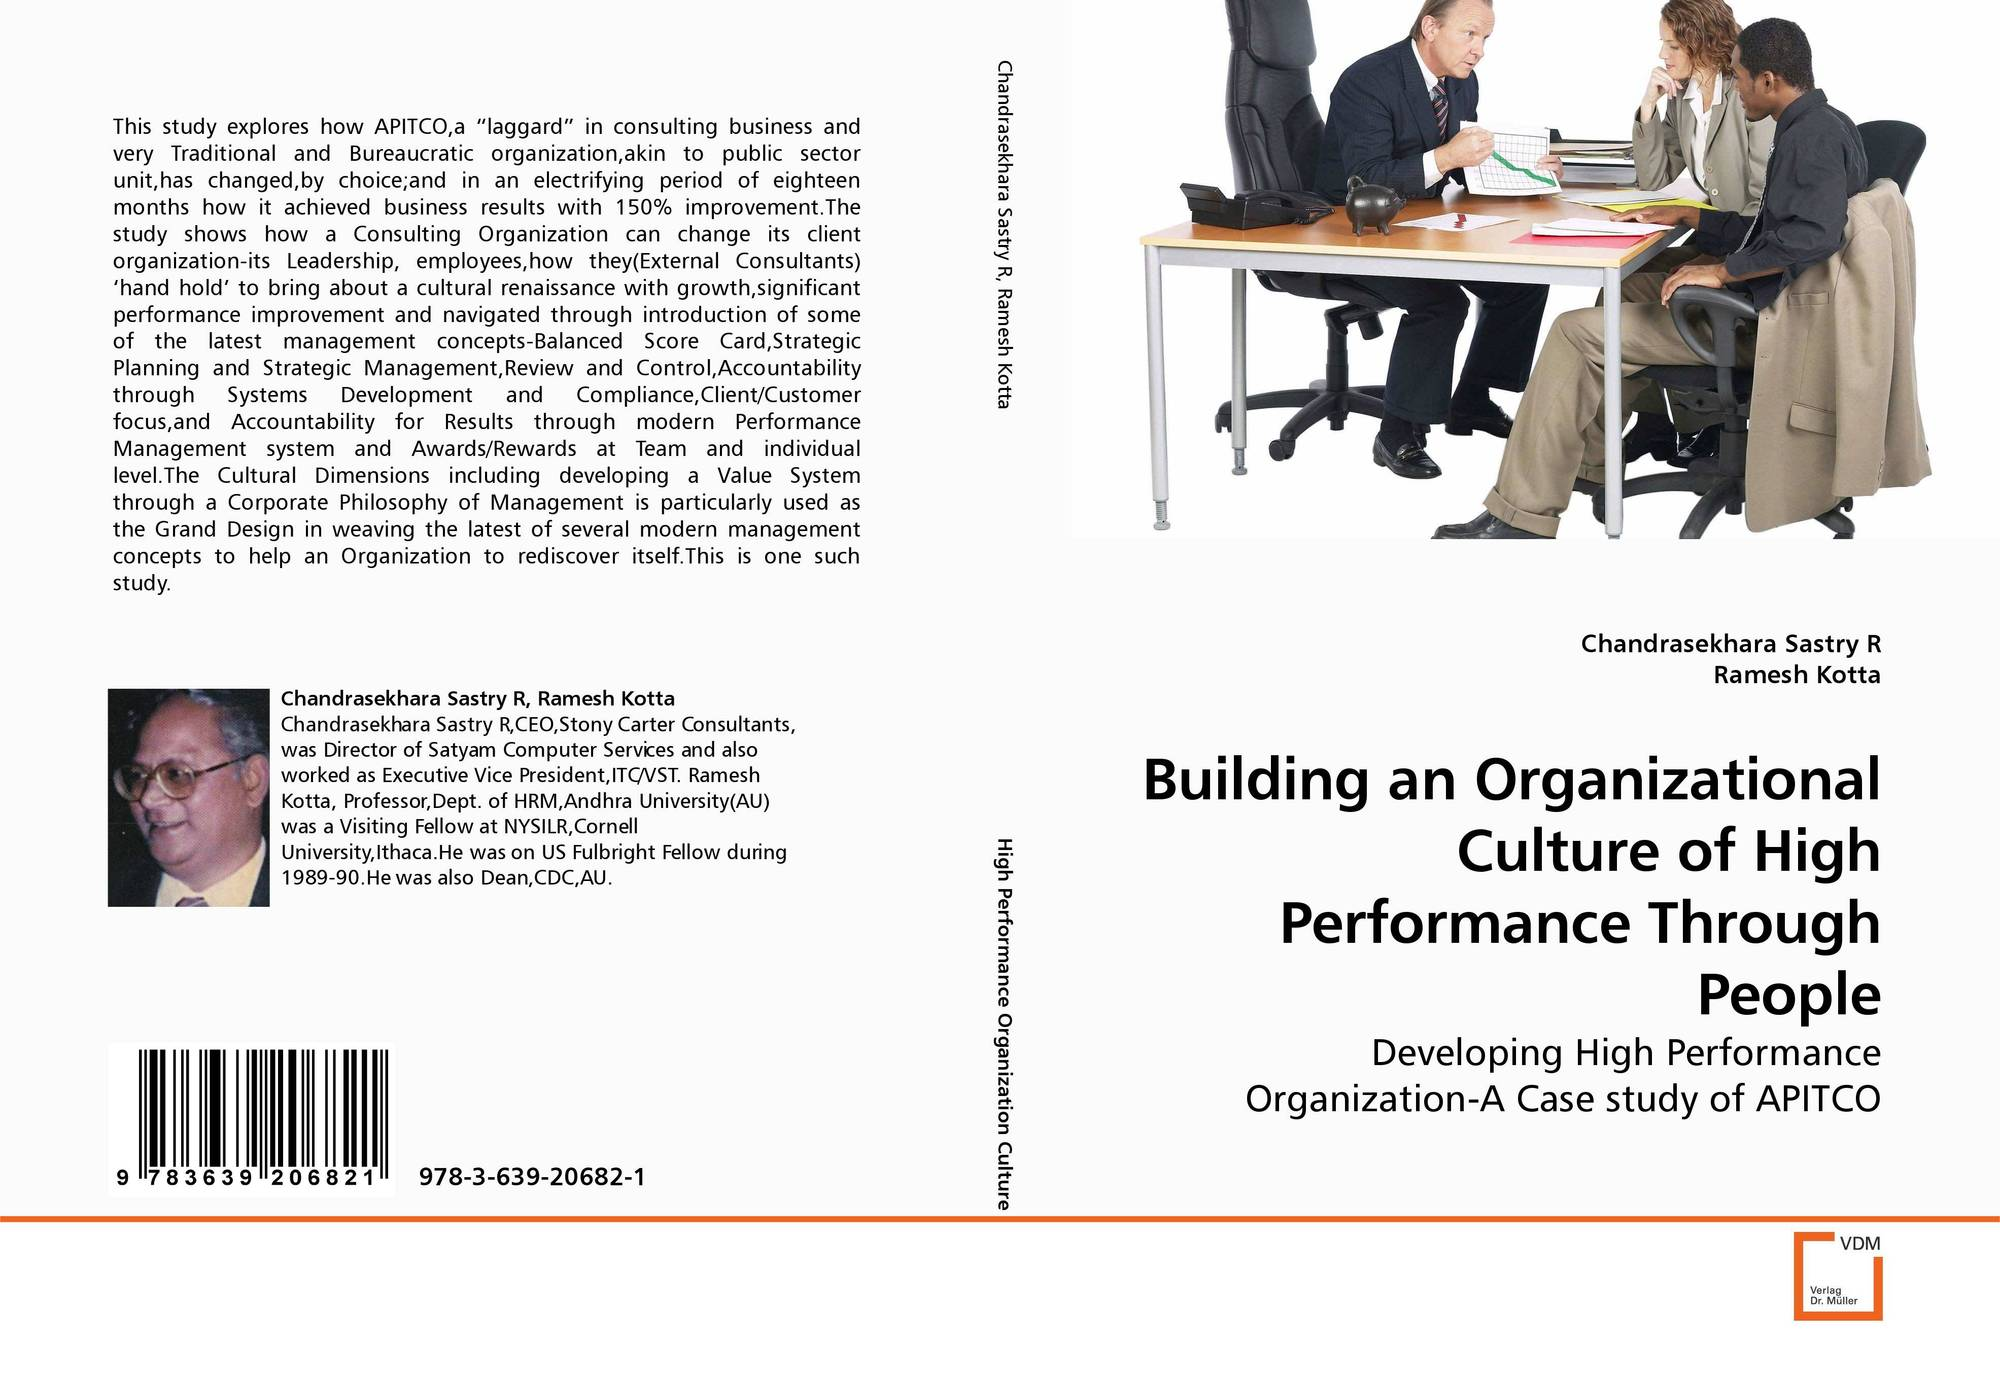 an introduction to high performance organizations Organizational performance comprises the actual output or results of an many organizations have attempted to manage organizational performance using the.